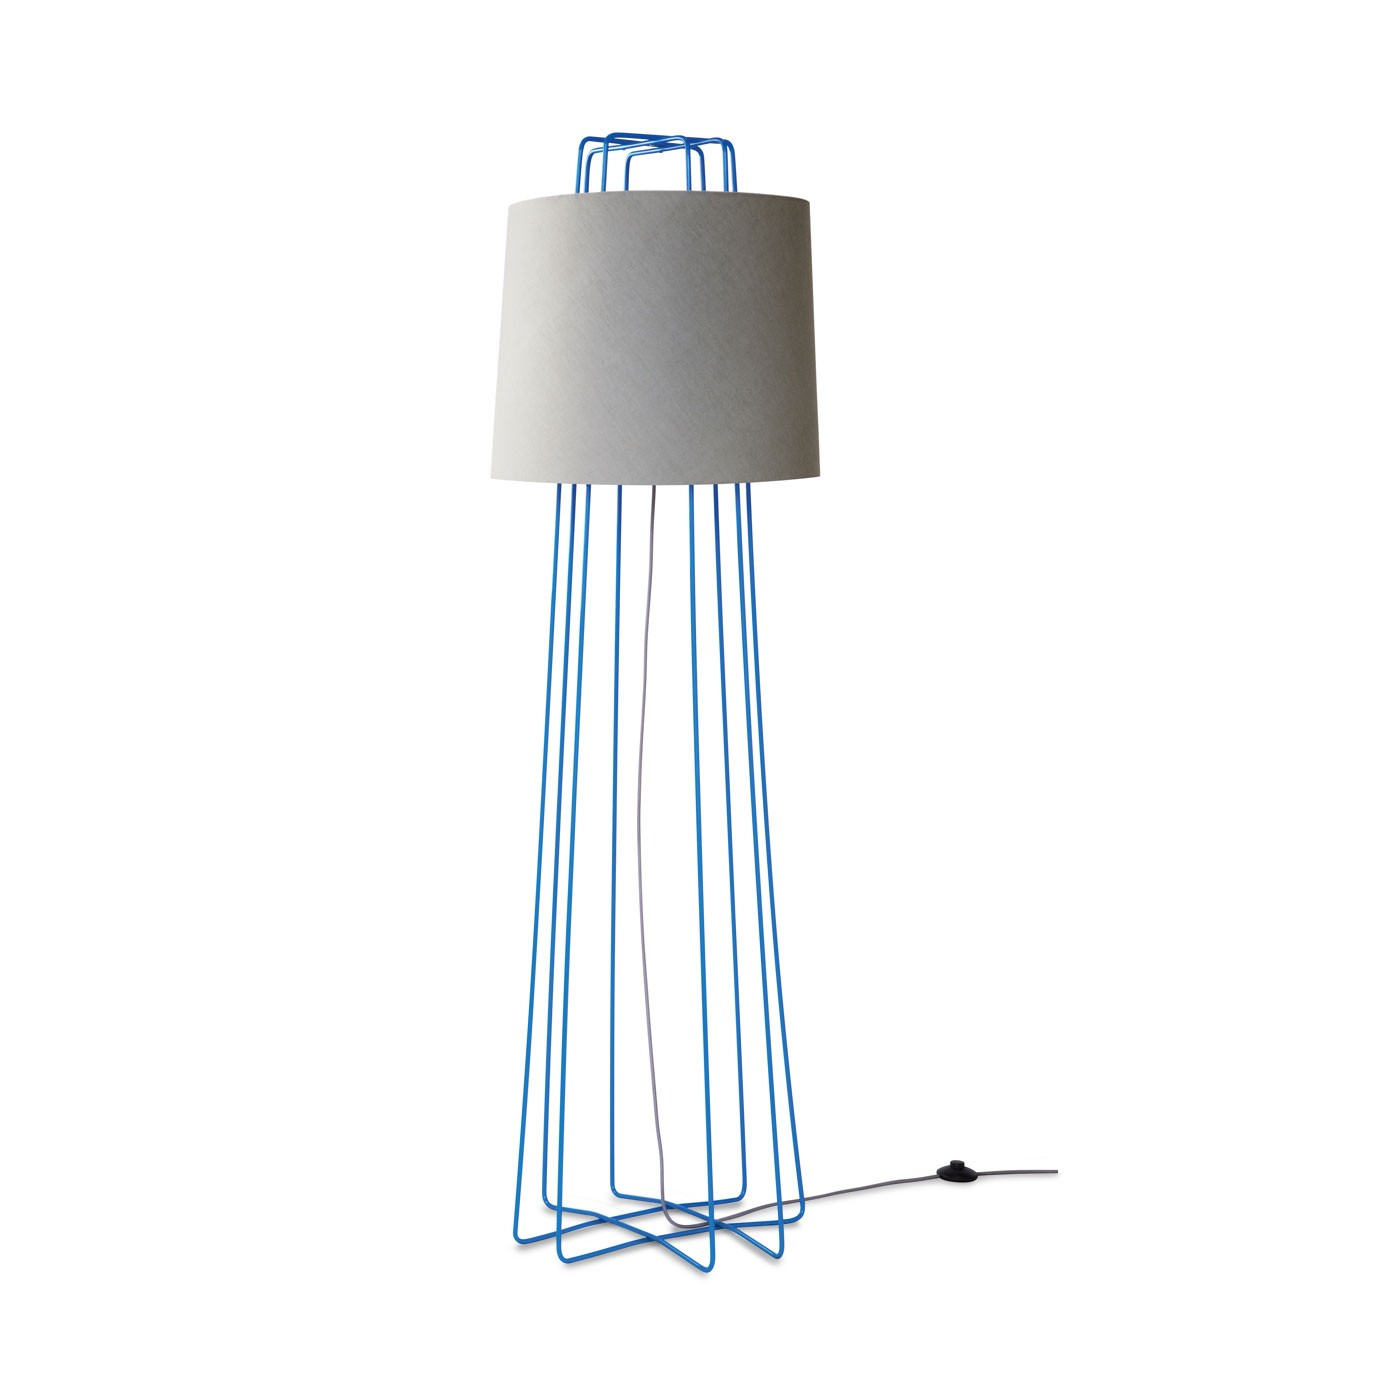 perimeter_modern_floor_lamp_-_blue_1